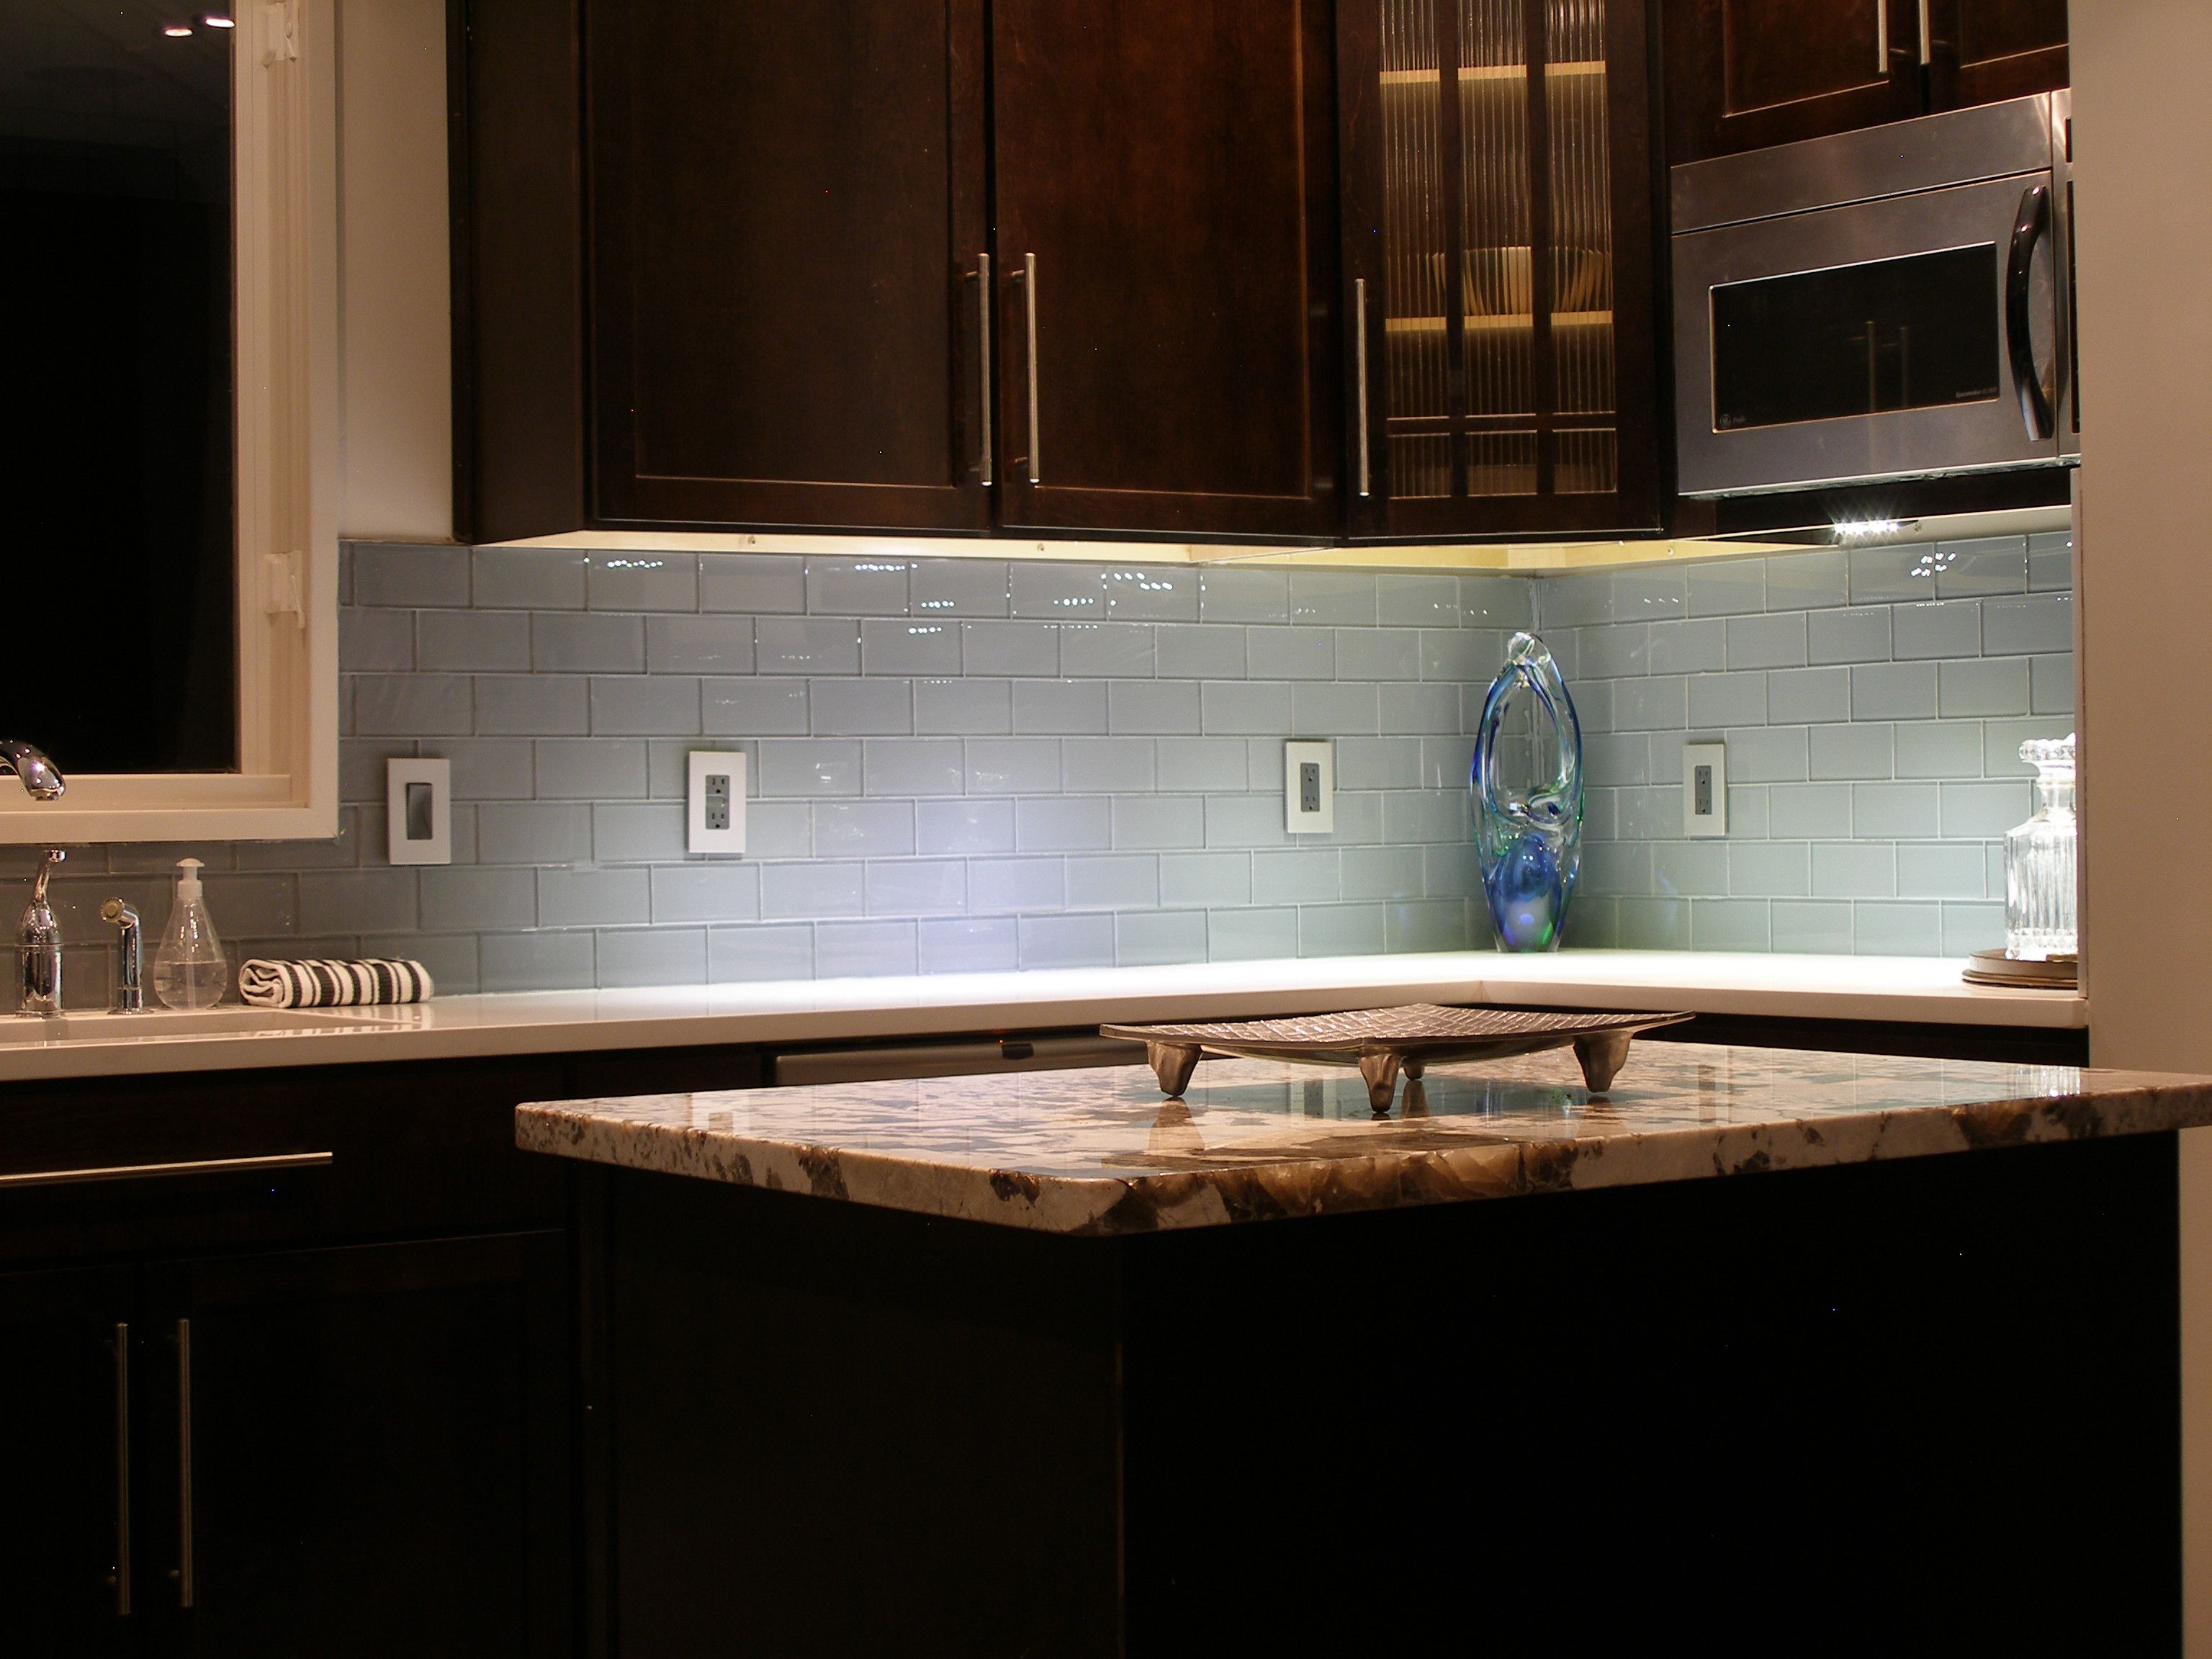 Sky Blue Glass Subway Tile Glass Backsplash Kitchen Backsplash